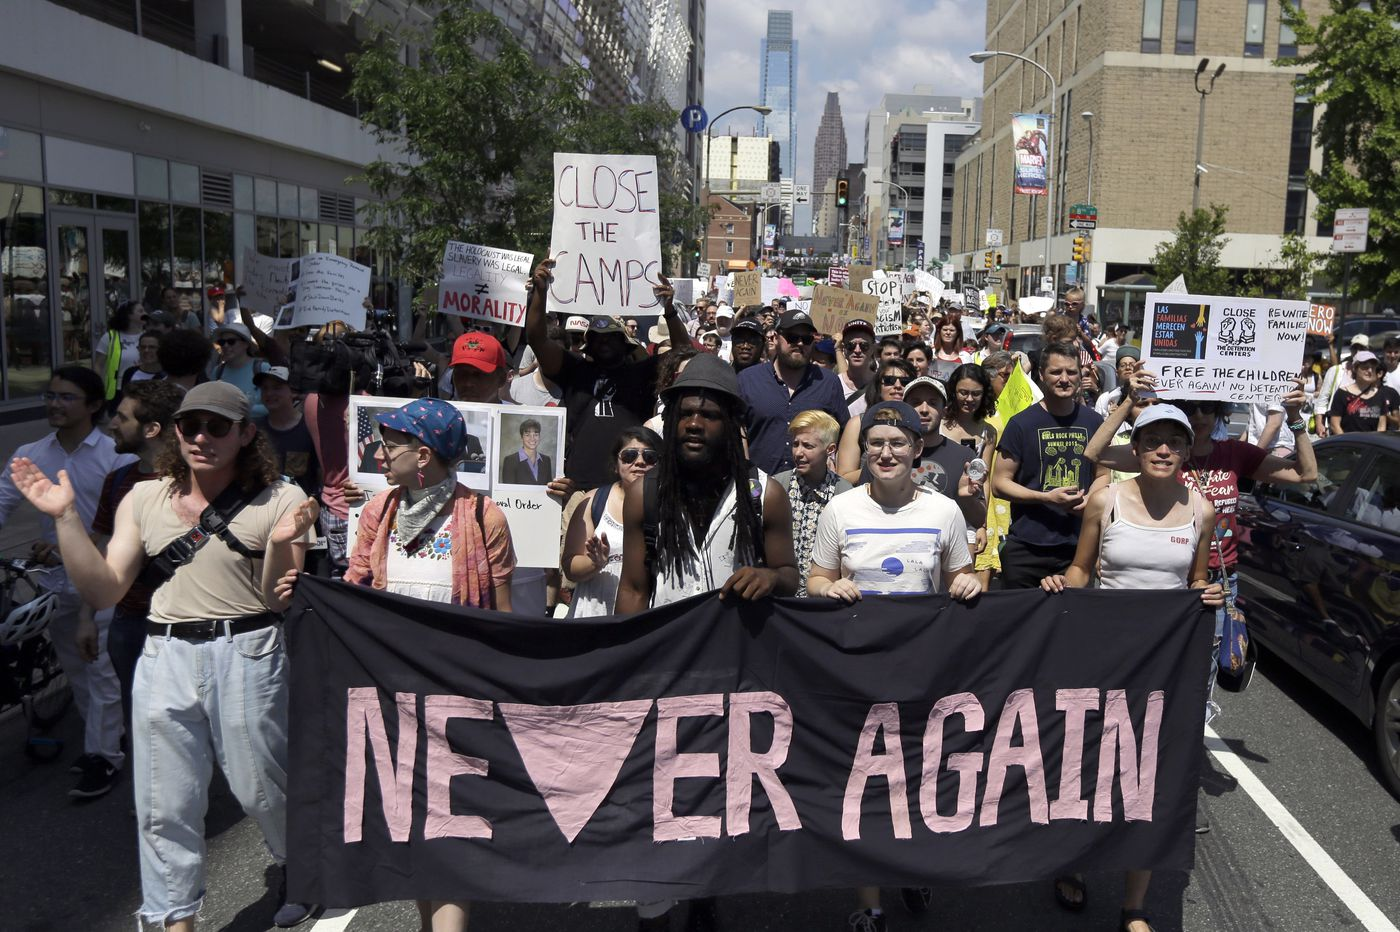 Meet the young Jews chanting 'Never again!' and blocking streets to shut down Trump's camps | Will Bunch